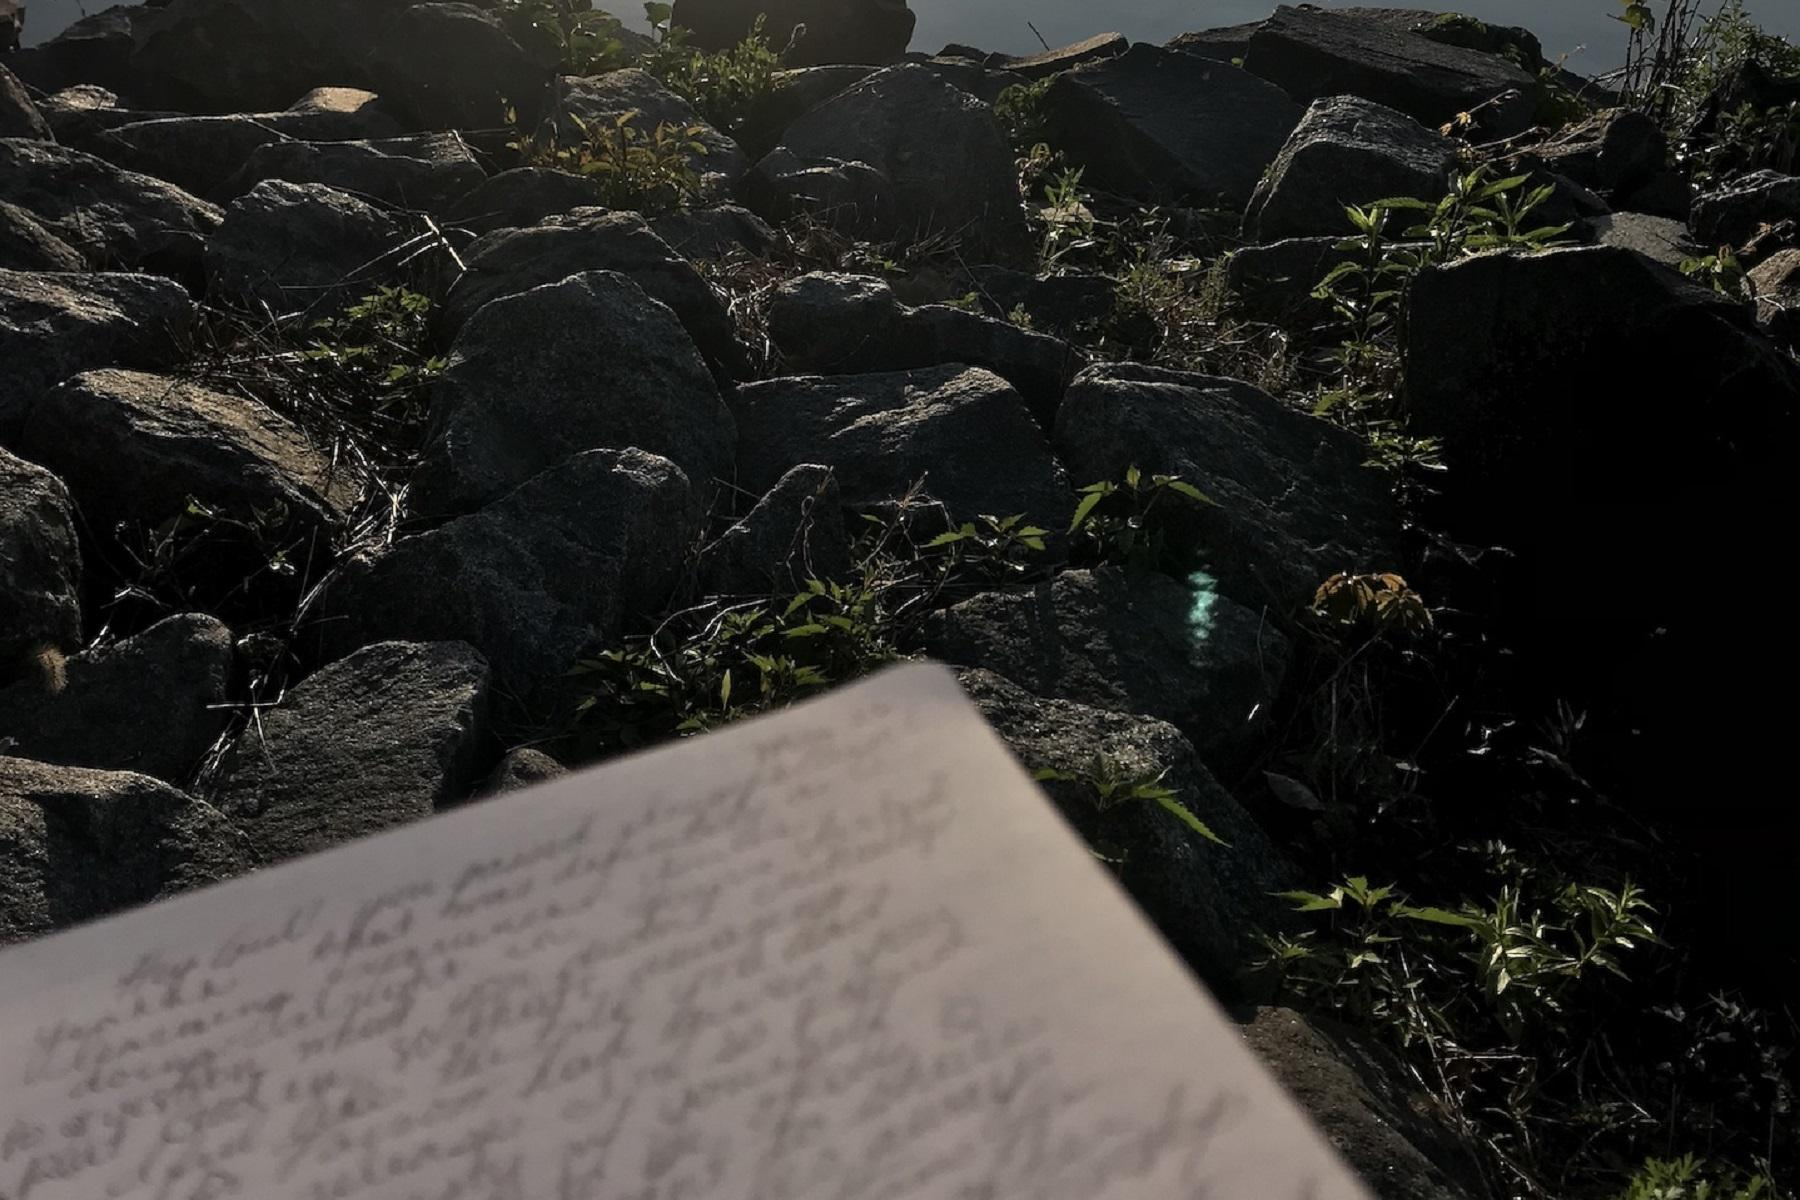 Notebook with script writing against a backdrop of rocks by the water